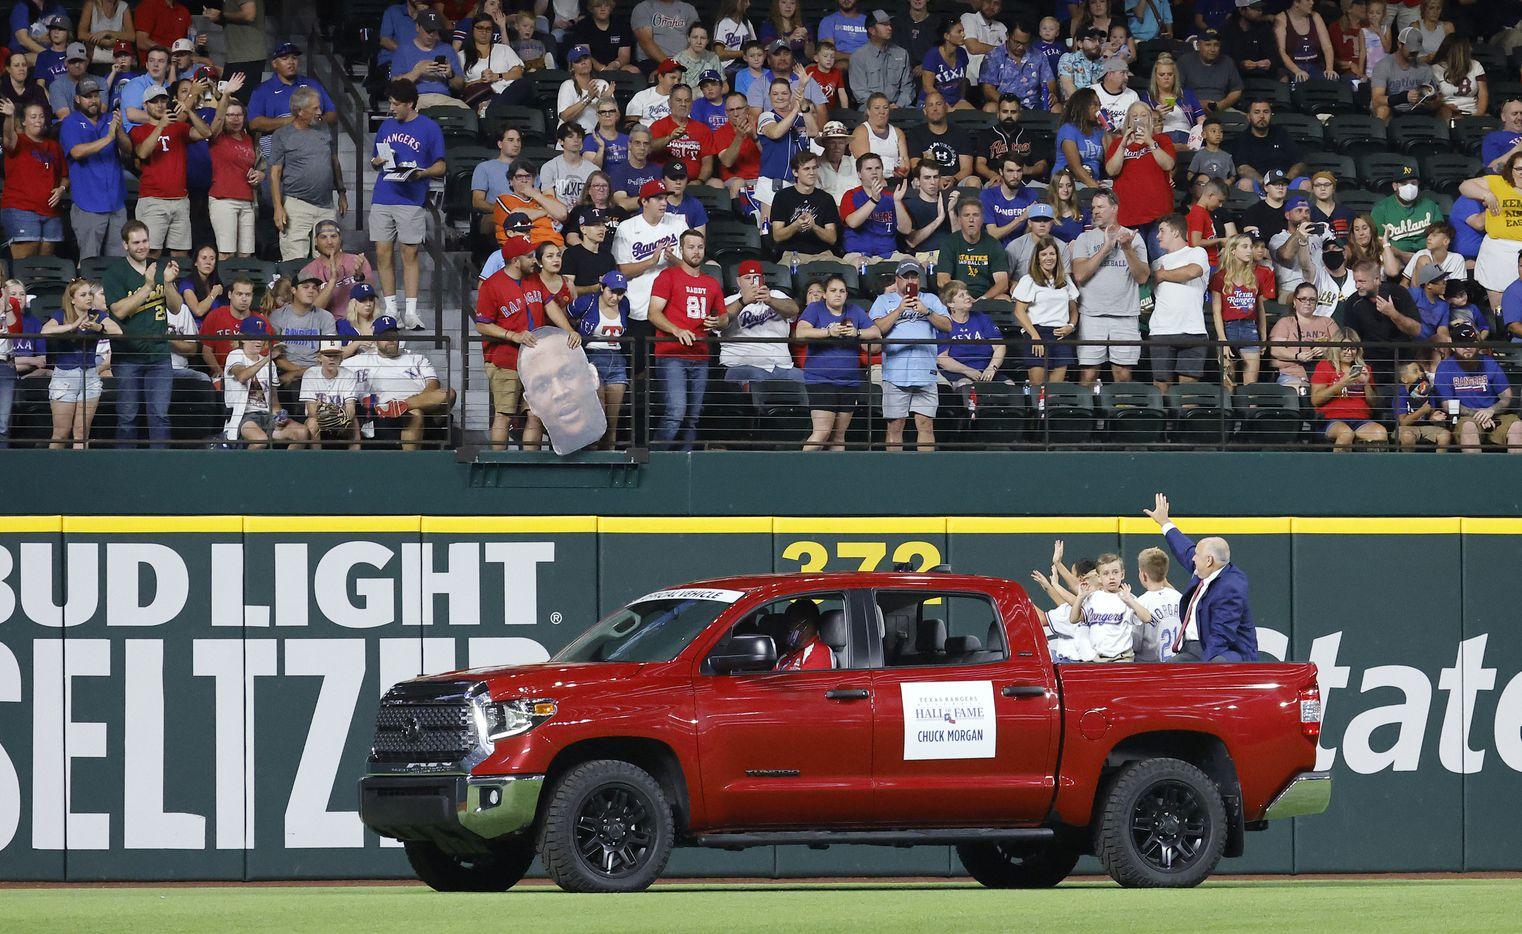 Texas Rangers executive vice president and public address announcer Chuck Morgan (right, in bed of truck) waves to fans following his induction into the Texas Rangers Baseball Hall of Fame at Globe Life Field in Arlington, Saturday, August 14, 2021.(Tom Fox/The Dallas Morning News)